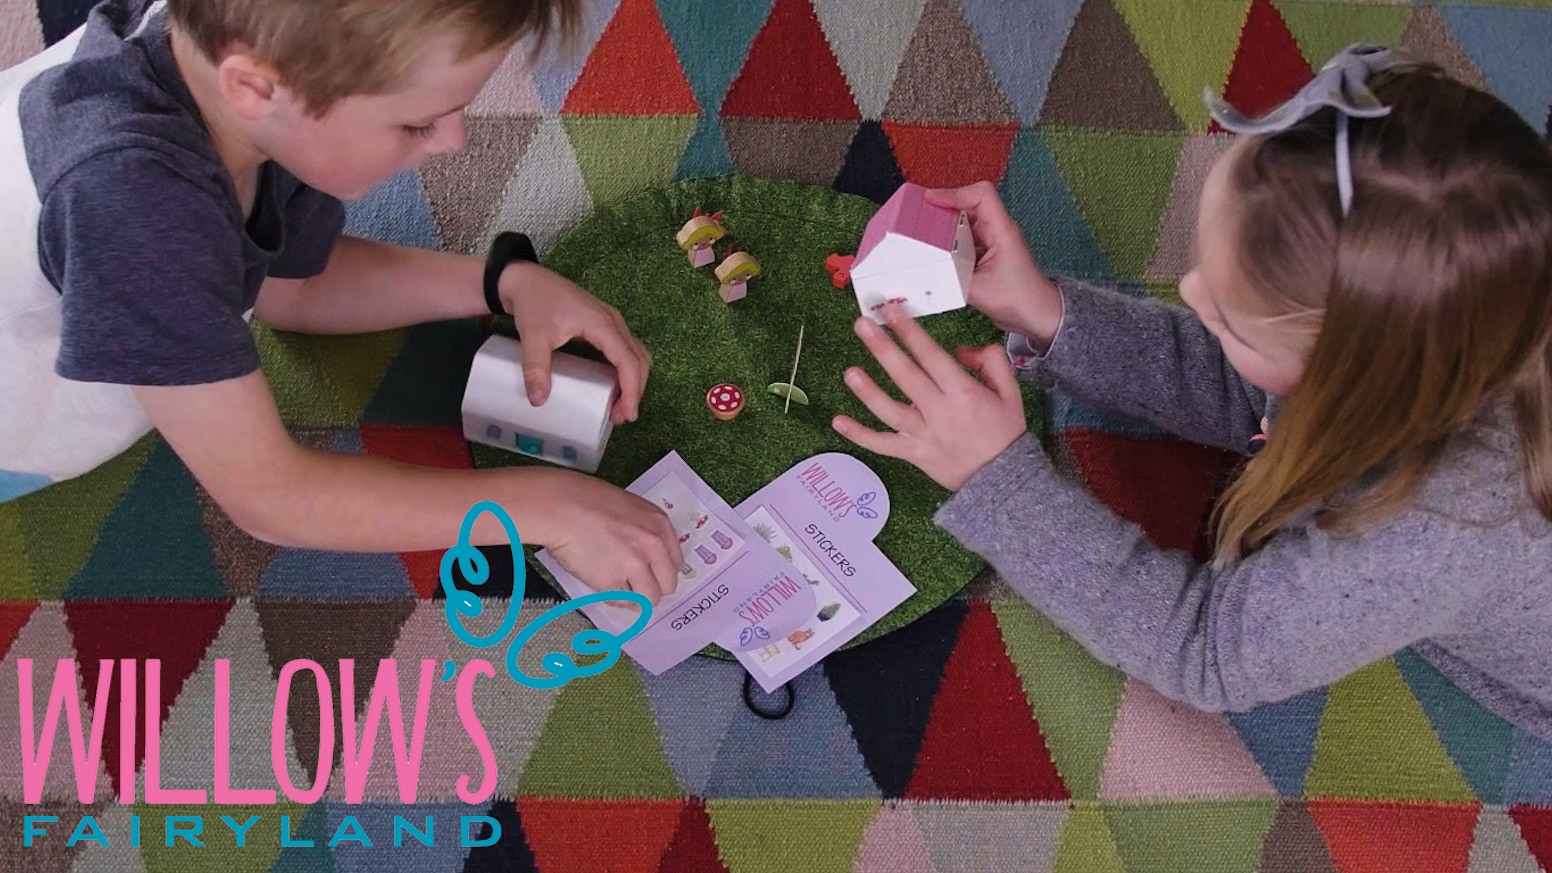 Willow's Fairyland is a gateway into the land of fairies. It is a portable Fairy House, complete with travel mat, stickers and a book.